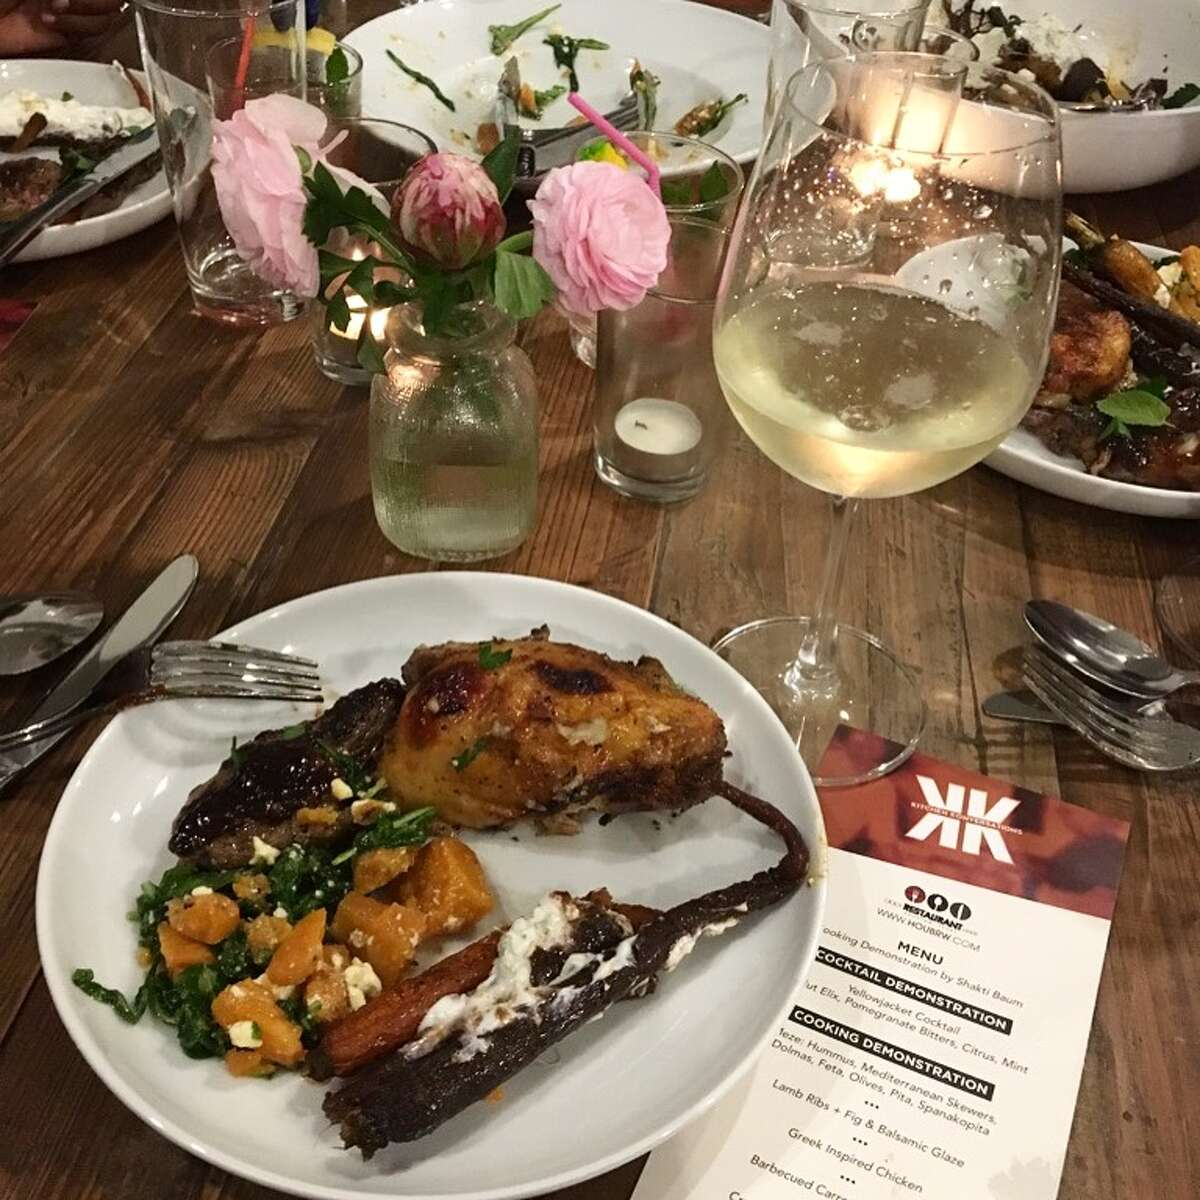 Houston Black Restaurant Week's first fall series, Harvest the Block, kicked off on Nov. 4 with a weekend's worth of events through Nov. 6 highlighting black farmers in Texas and their relationship to the local community.